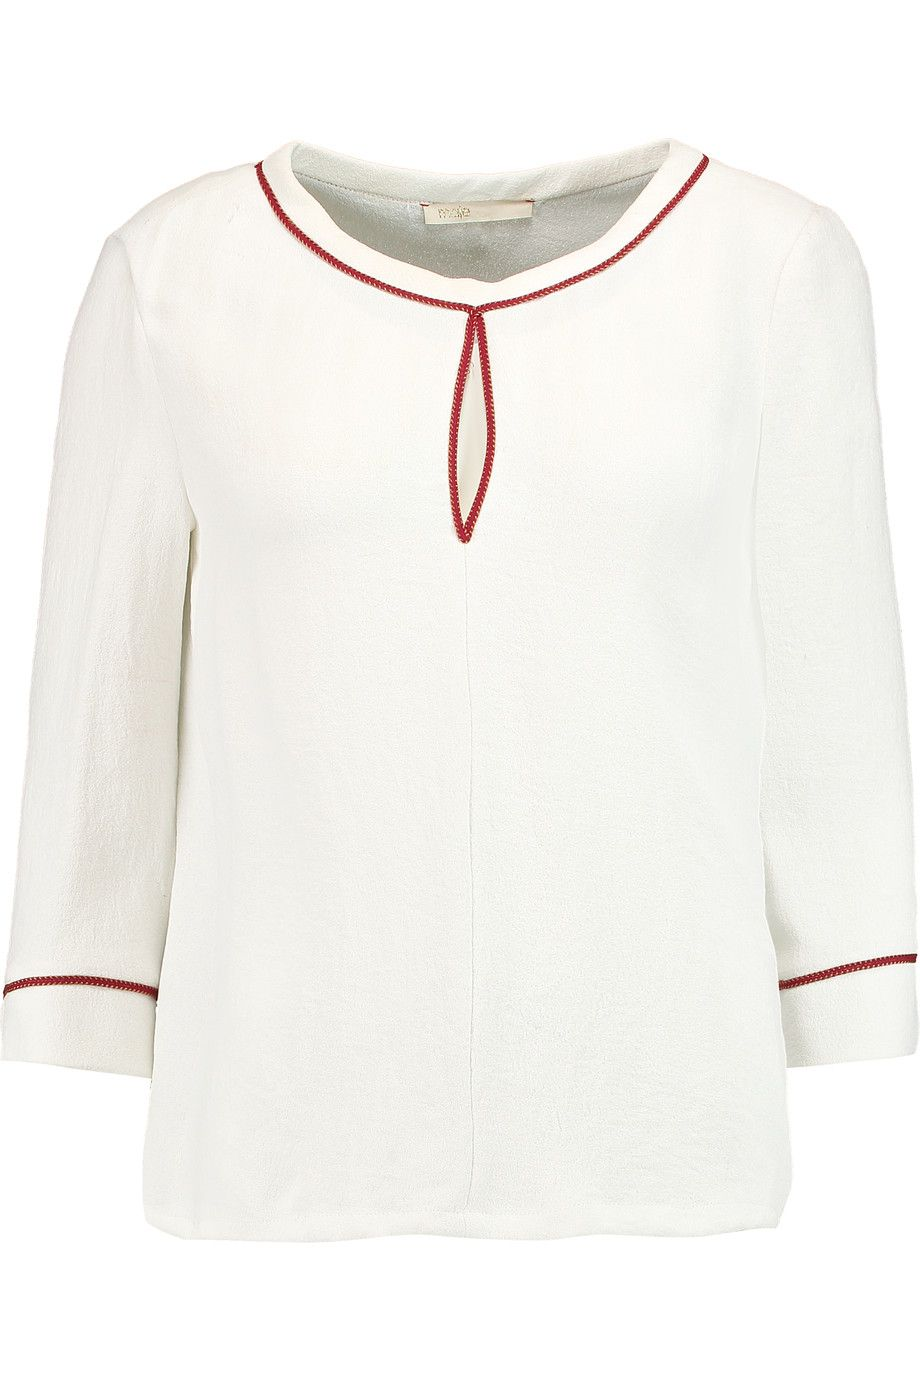 MAJE Lamia Embroidered Crepe Top. #maje #cloth #top